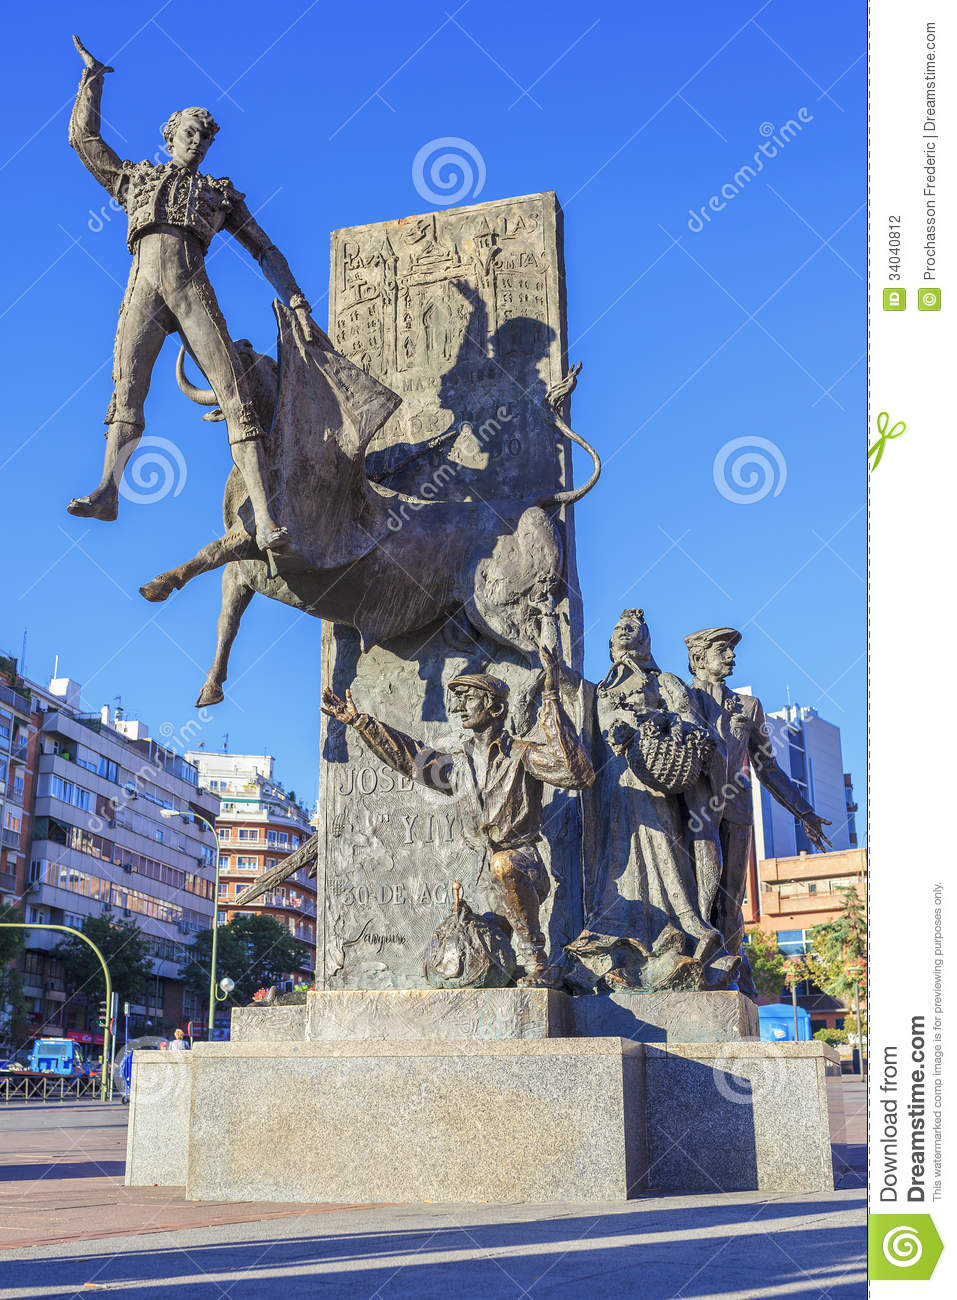 Bullfighter Sculpture In Front Of Bullfighting Stock Photography - Image: 340...